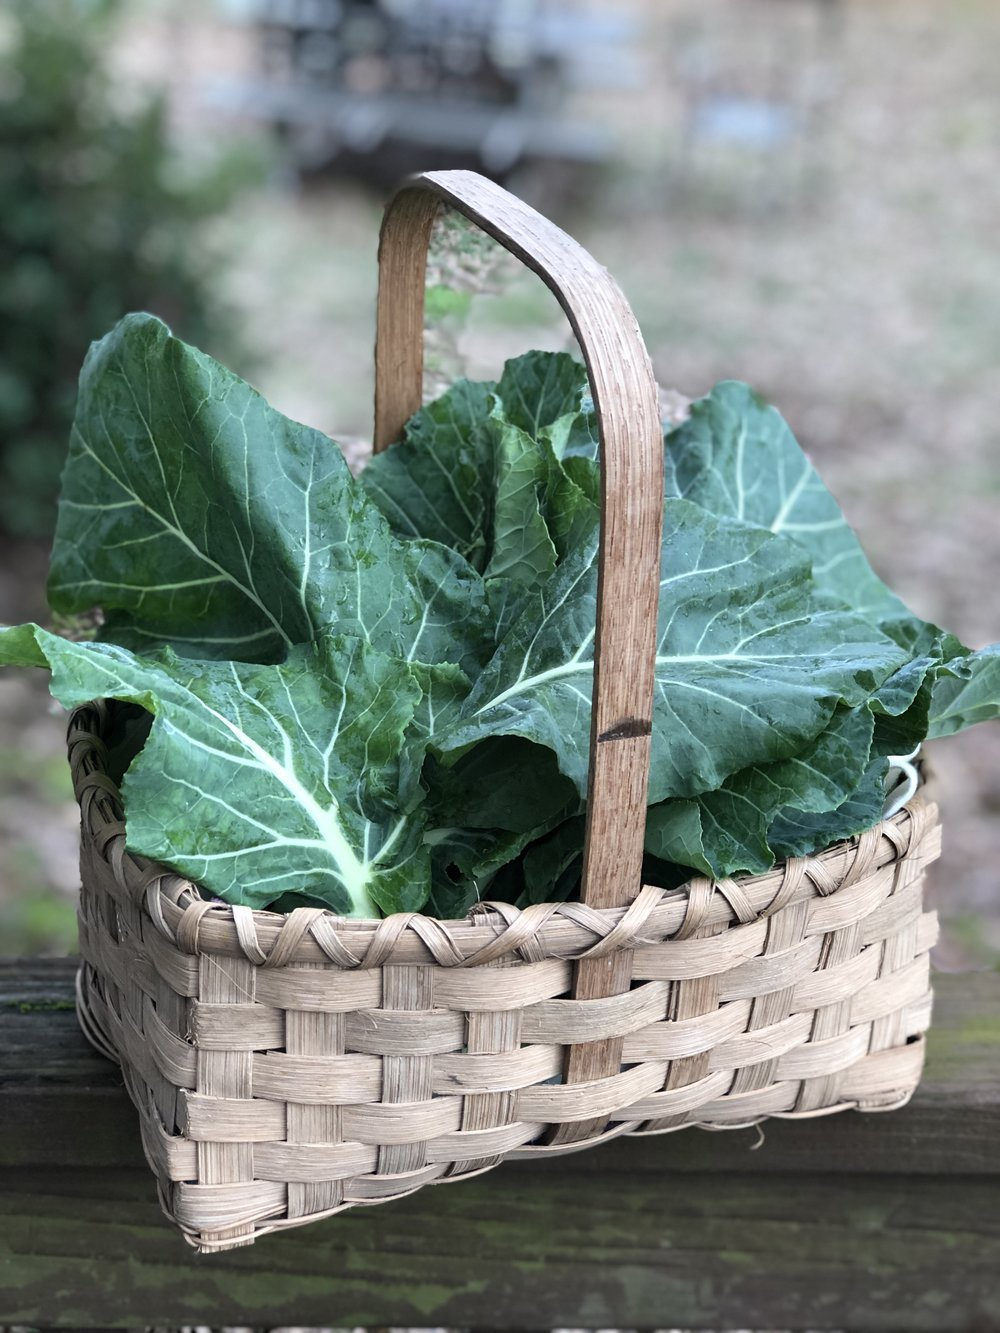 Collard greens in a basket my Grandfather bought from the square in Canton, Mississippi nearly 30 years ago. Photo by Amy Campbell.